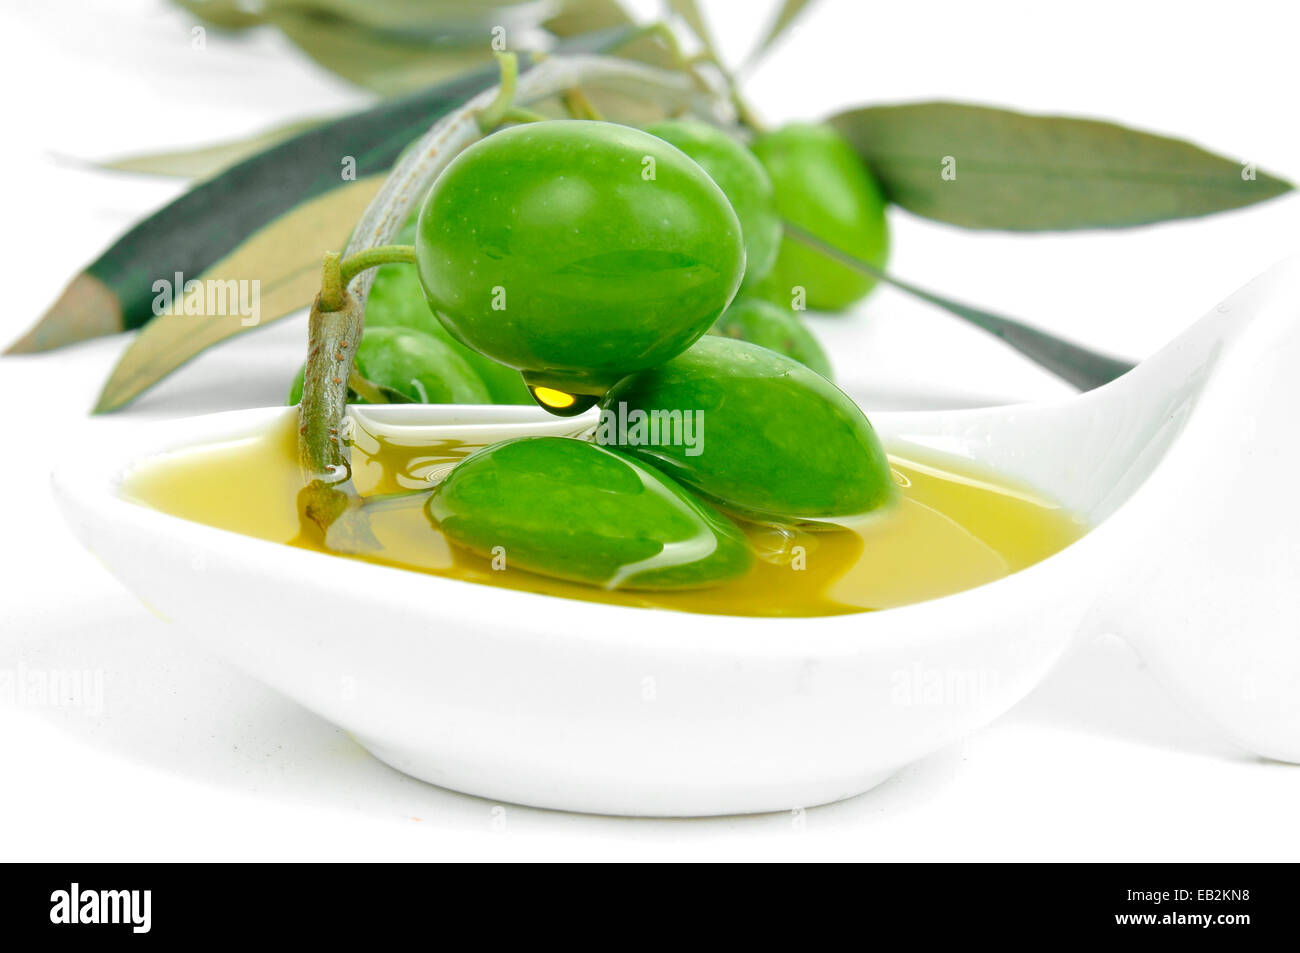 closeup of a twig of olive tree with olives on a bowl with olive oil - Stock Image